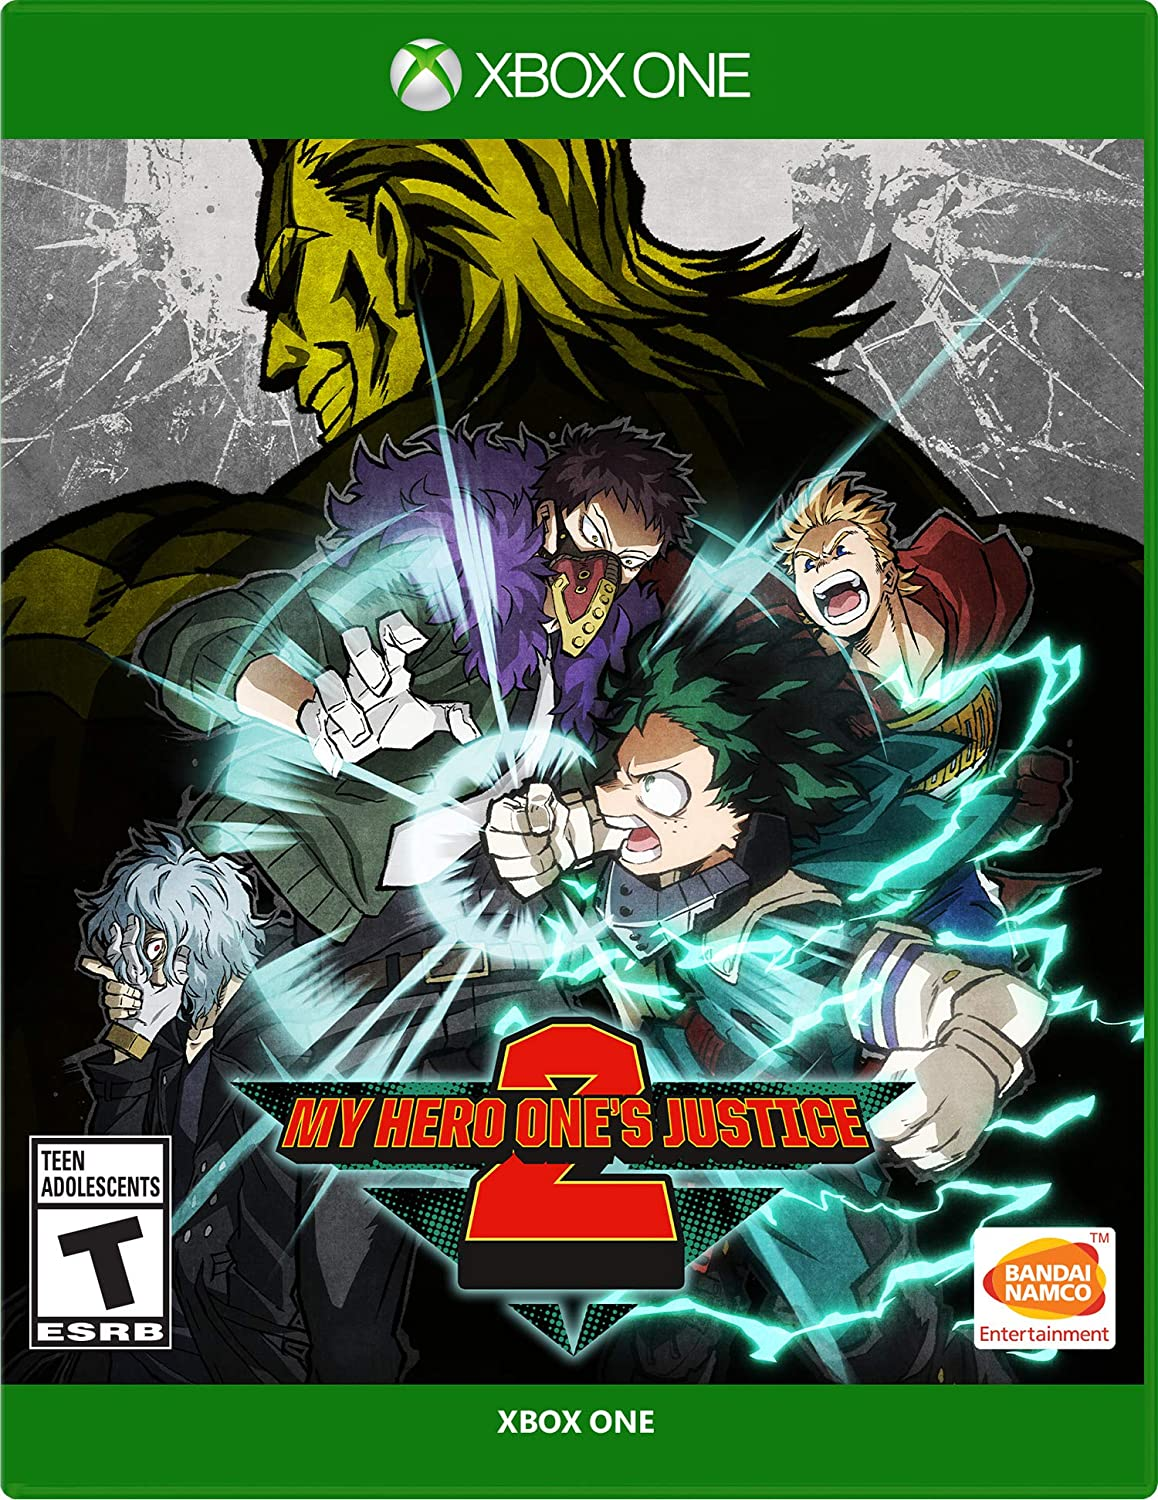 My Hero Ones Justice 2 for Xbox One [USA]: Amazon.es: Bandai Namco Games Amer: Cine y Series TV